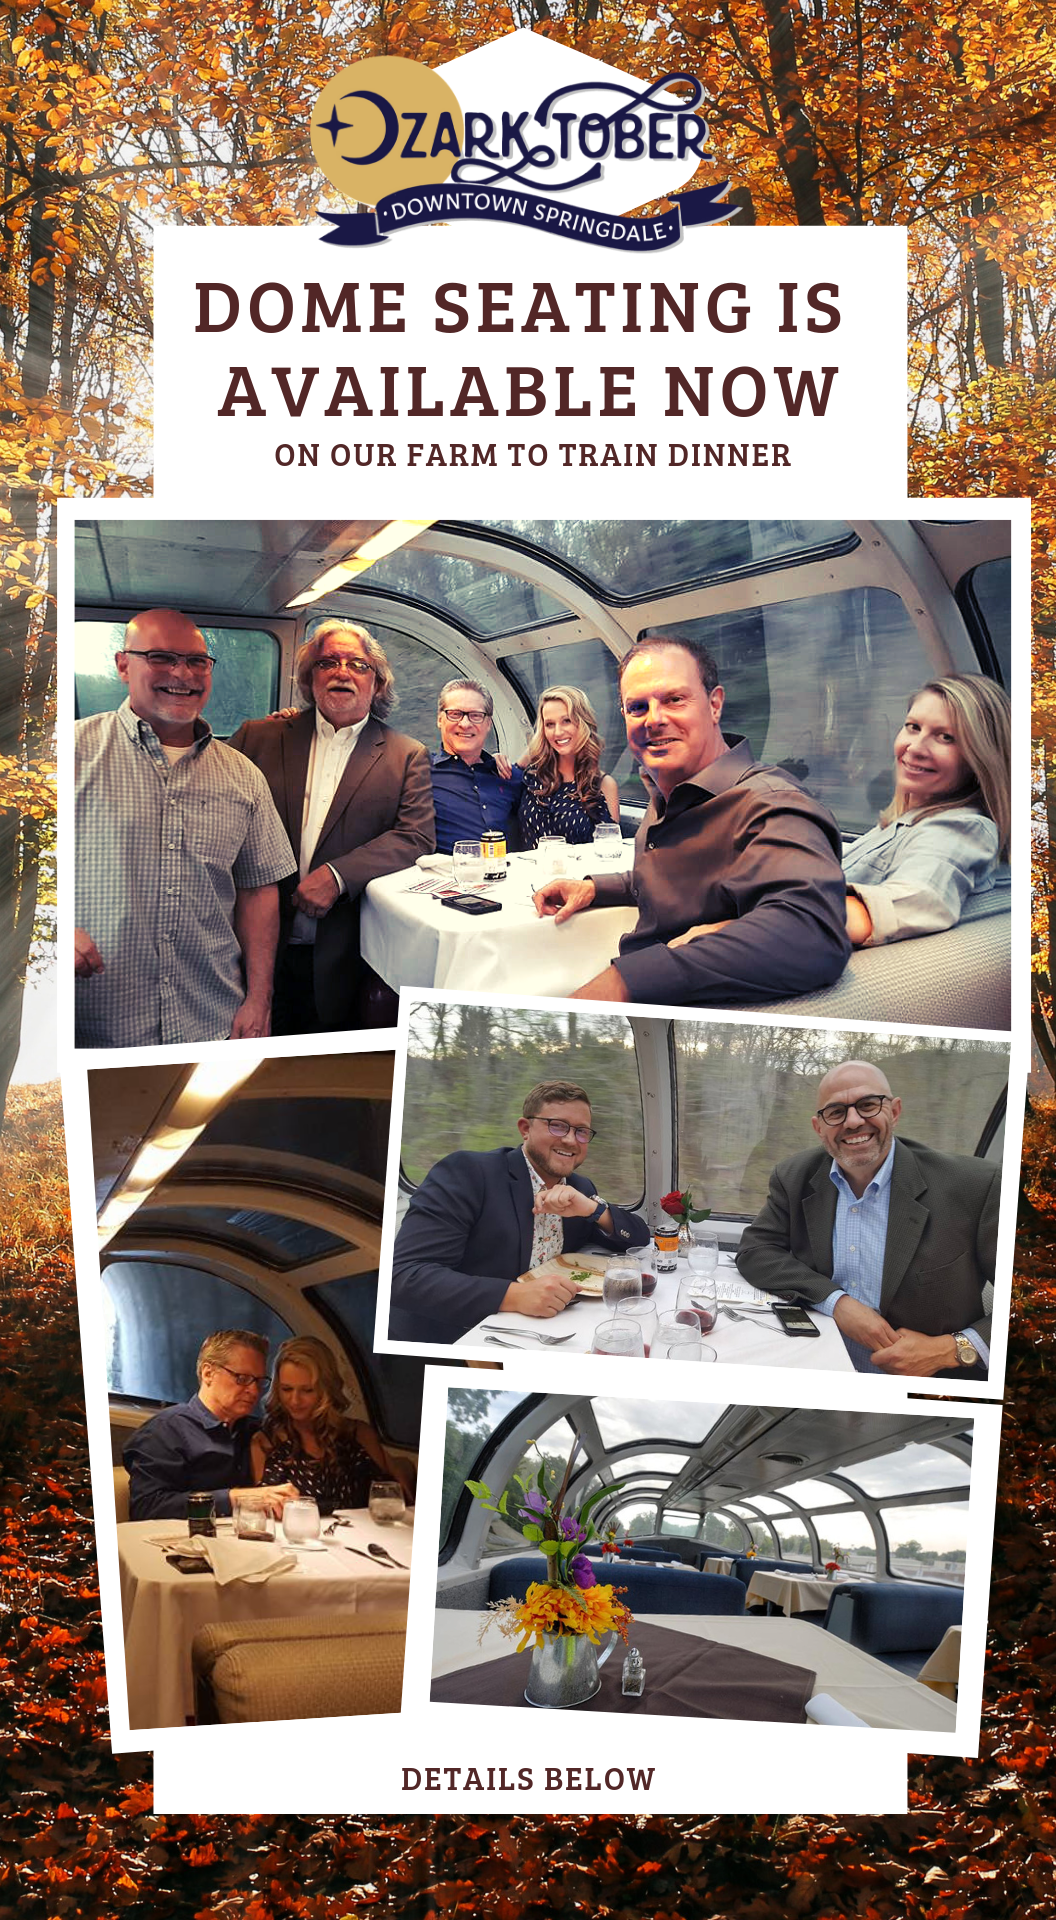 Farm to Train Dinner dome seating available now